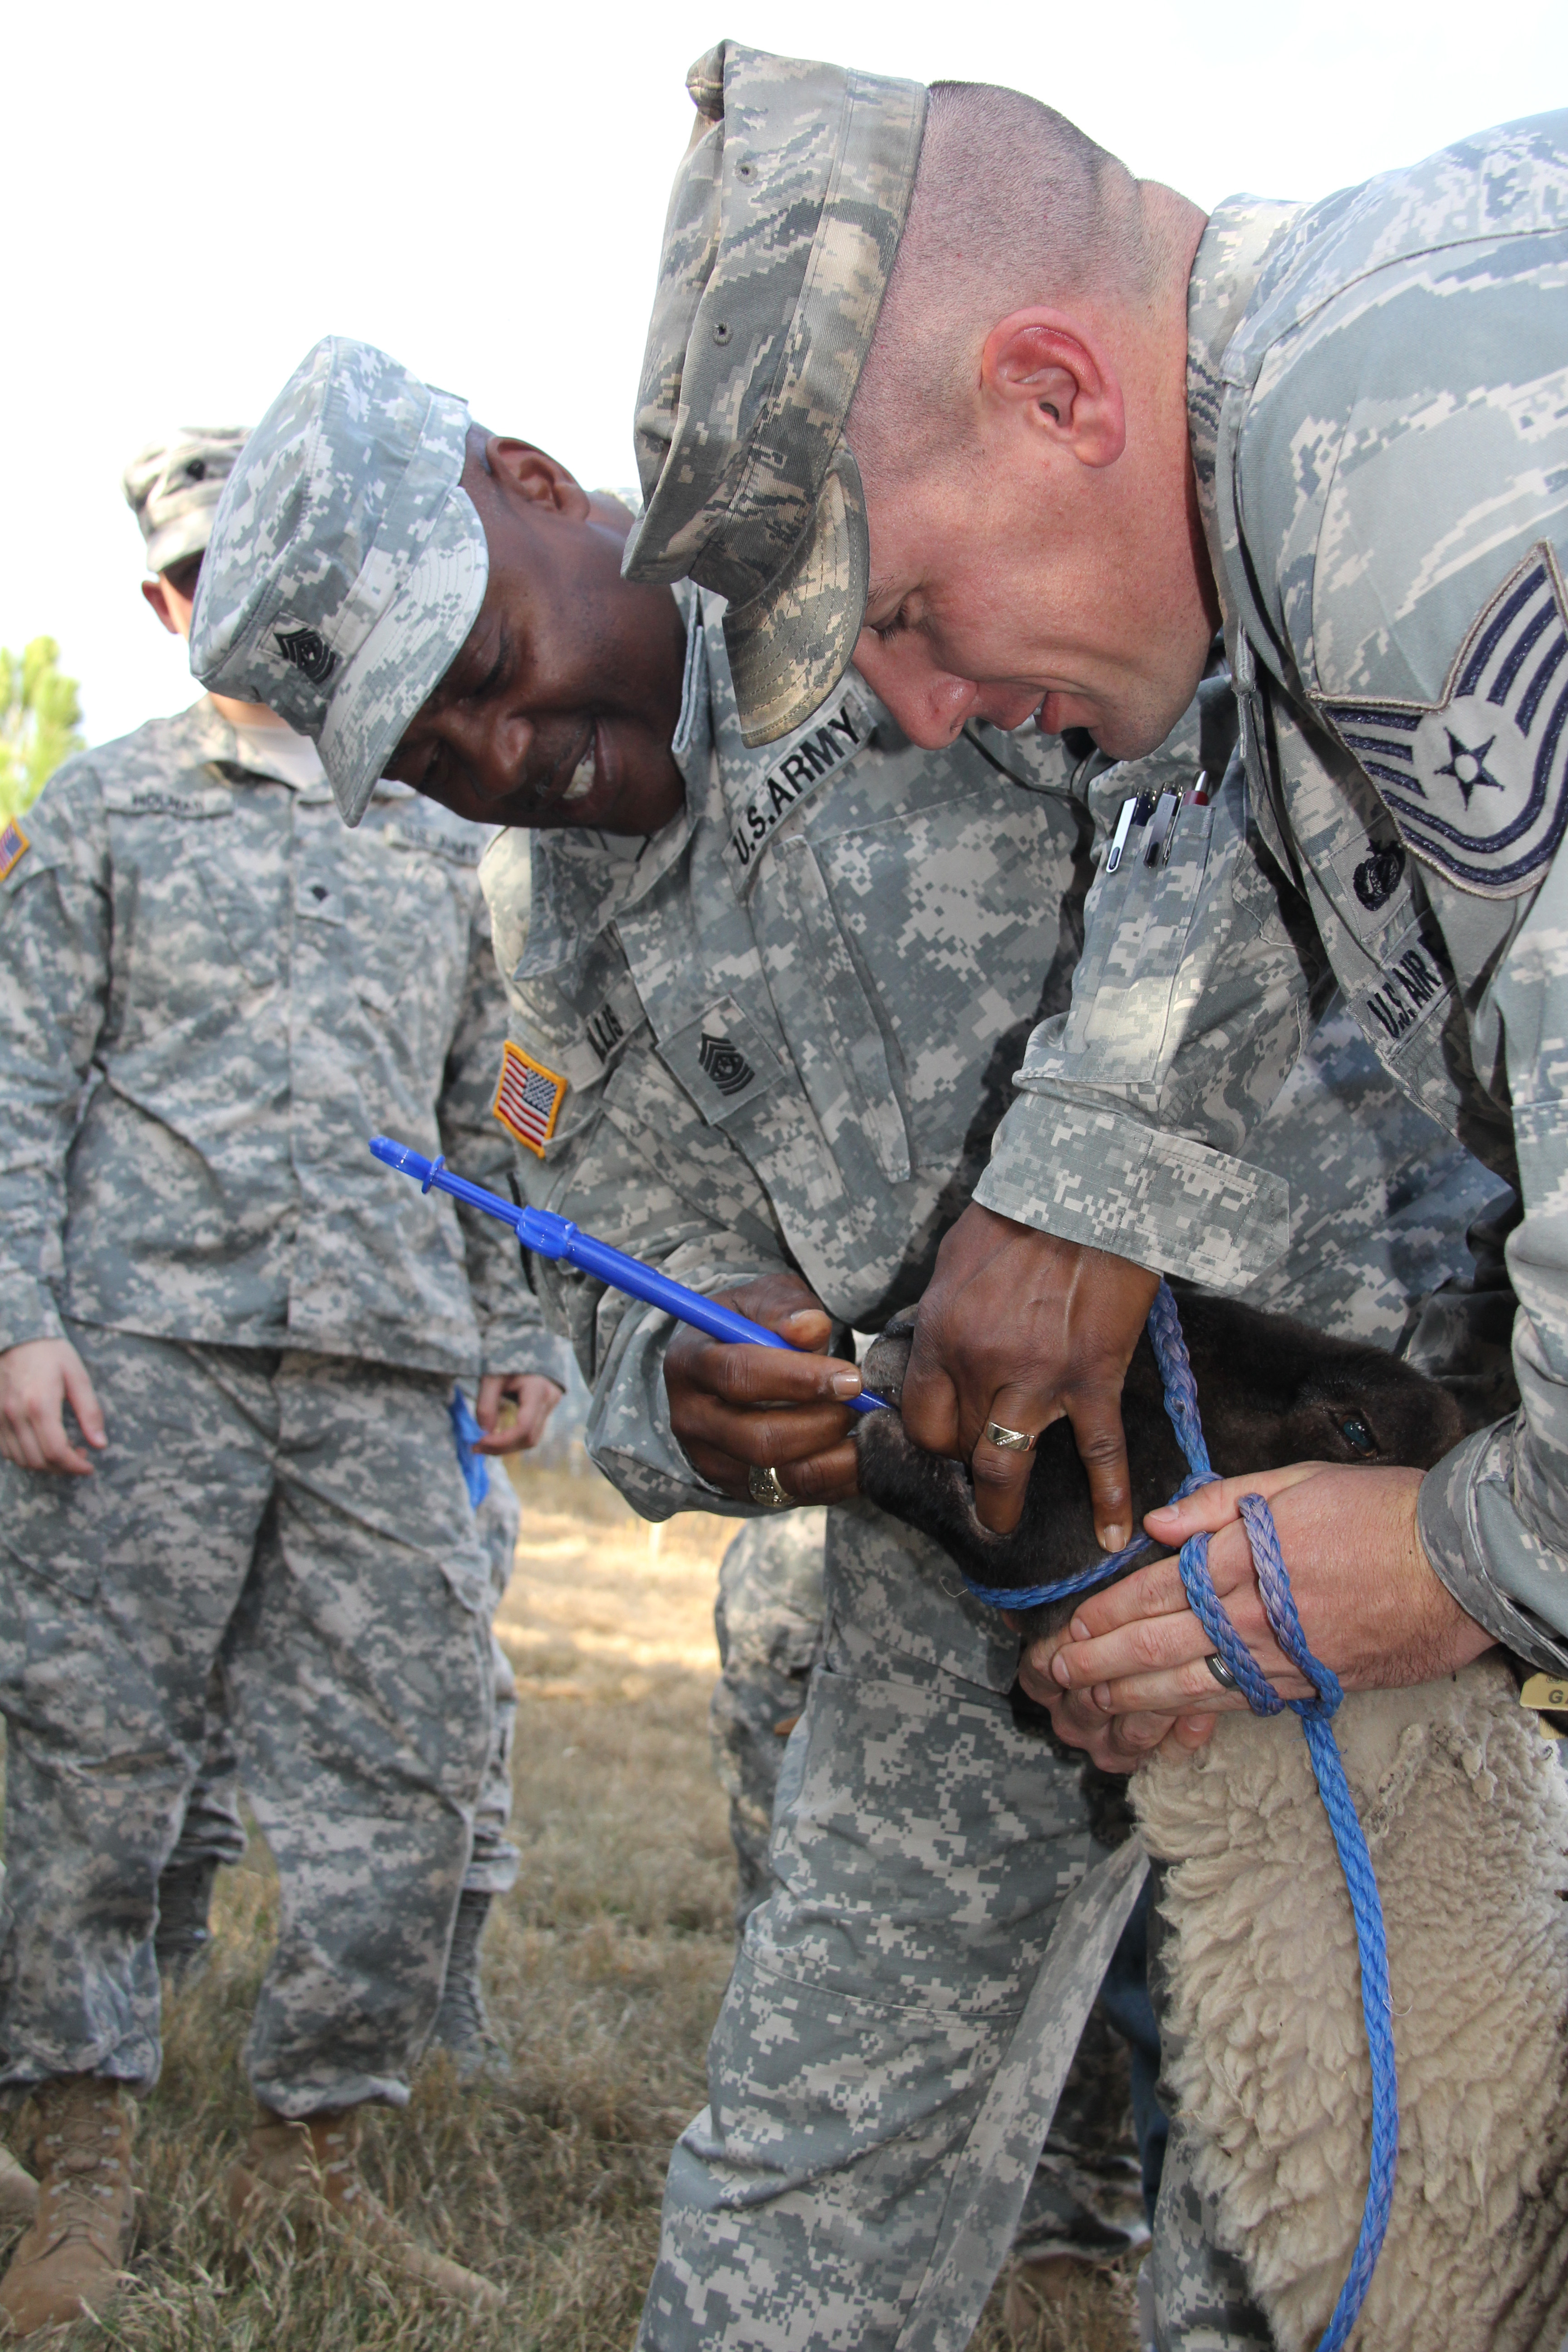 During a previous year's ADT training, Command Sergeant Major Tony Willis practices using a pill popper to dispense medicine to a sheep while Tech Sergeant Kody Jorgensen holds the ewe. Drs. Will Getz and Seyedmehdi Mobini of Fort Valley State University helped UGA agricultural experts train the Georgia National Guardsmen for a mission in Afghanistan.